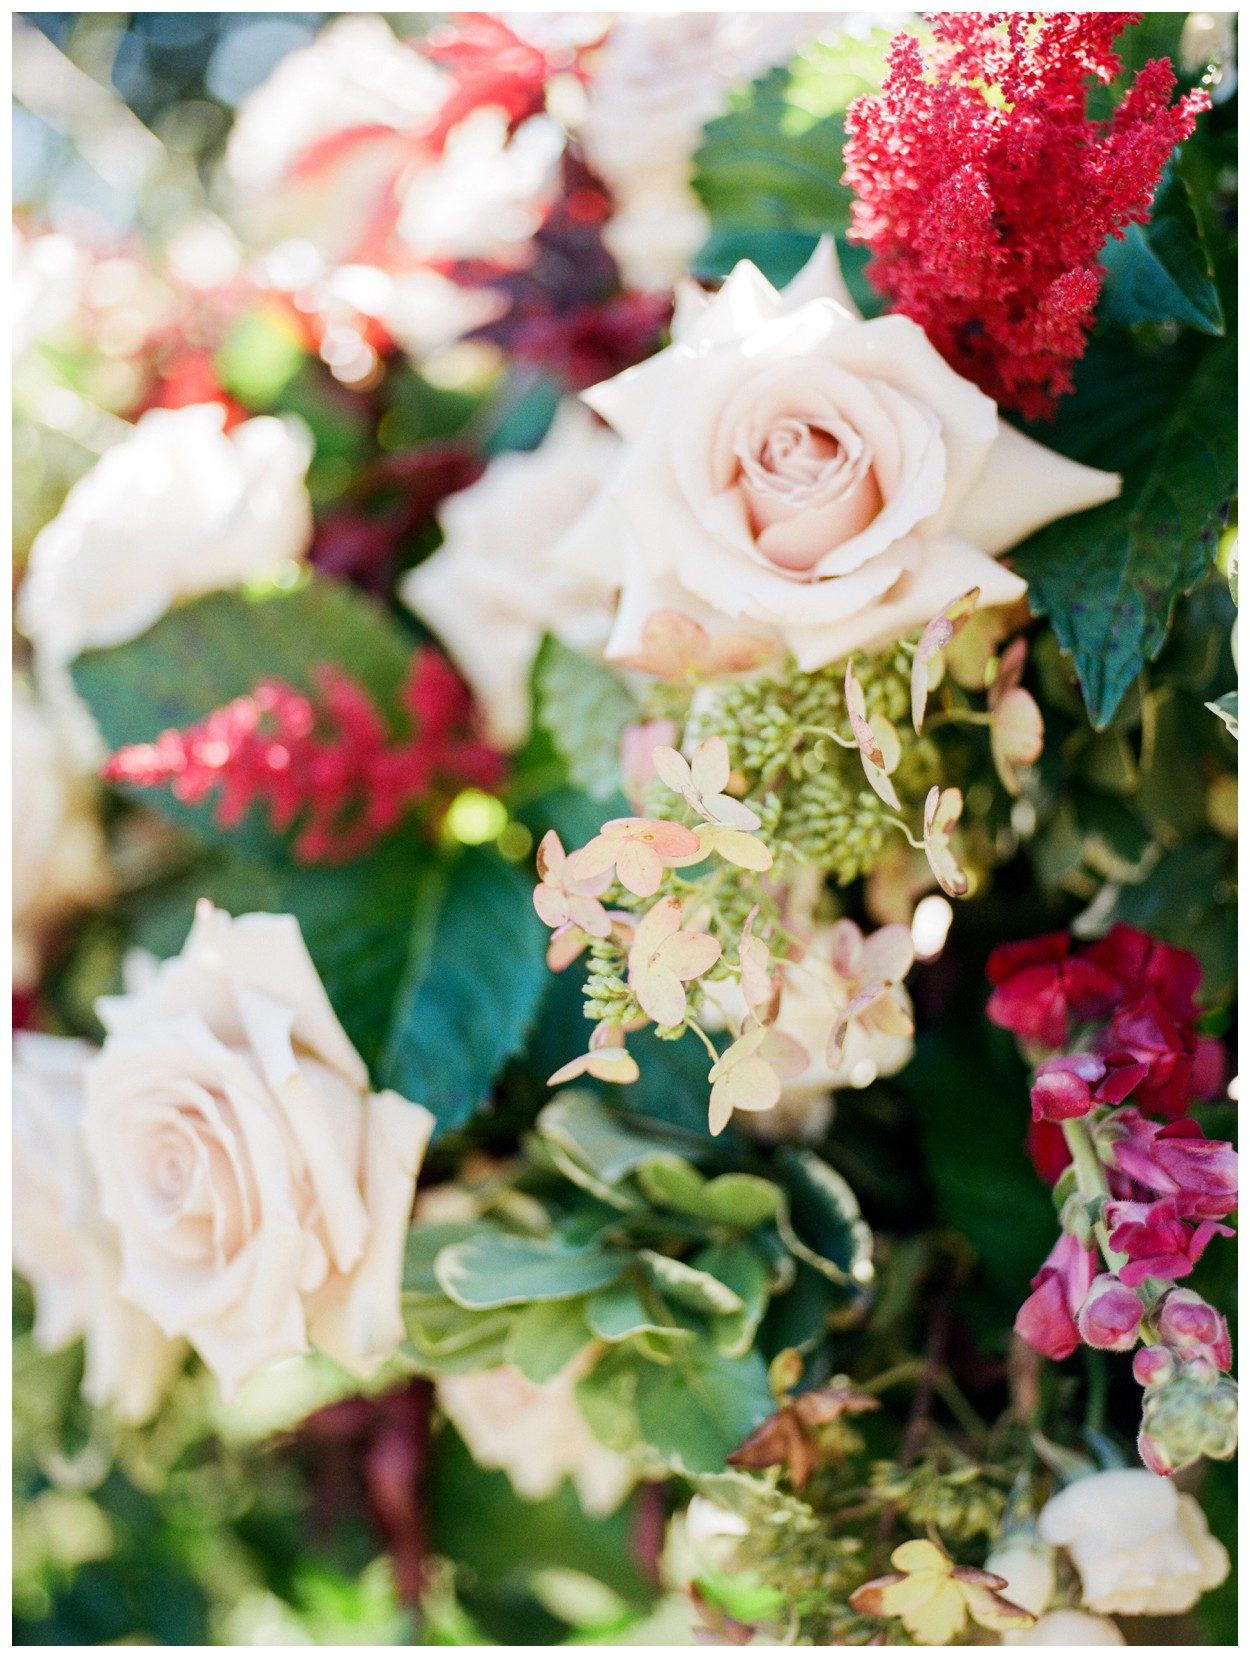 Sun drenched fall wedding in shades of pink at Oxon Hill Manor in Maryland ceremony flowers by sweet root village by Washington DC fine art photographer Lissa Ryan Photography